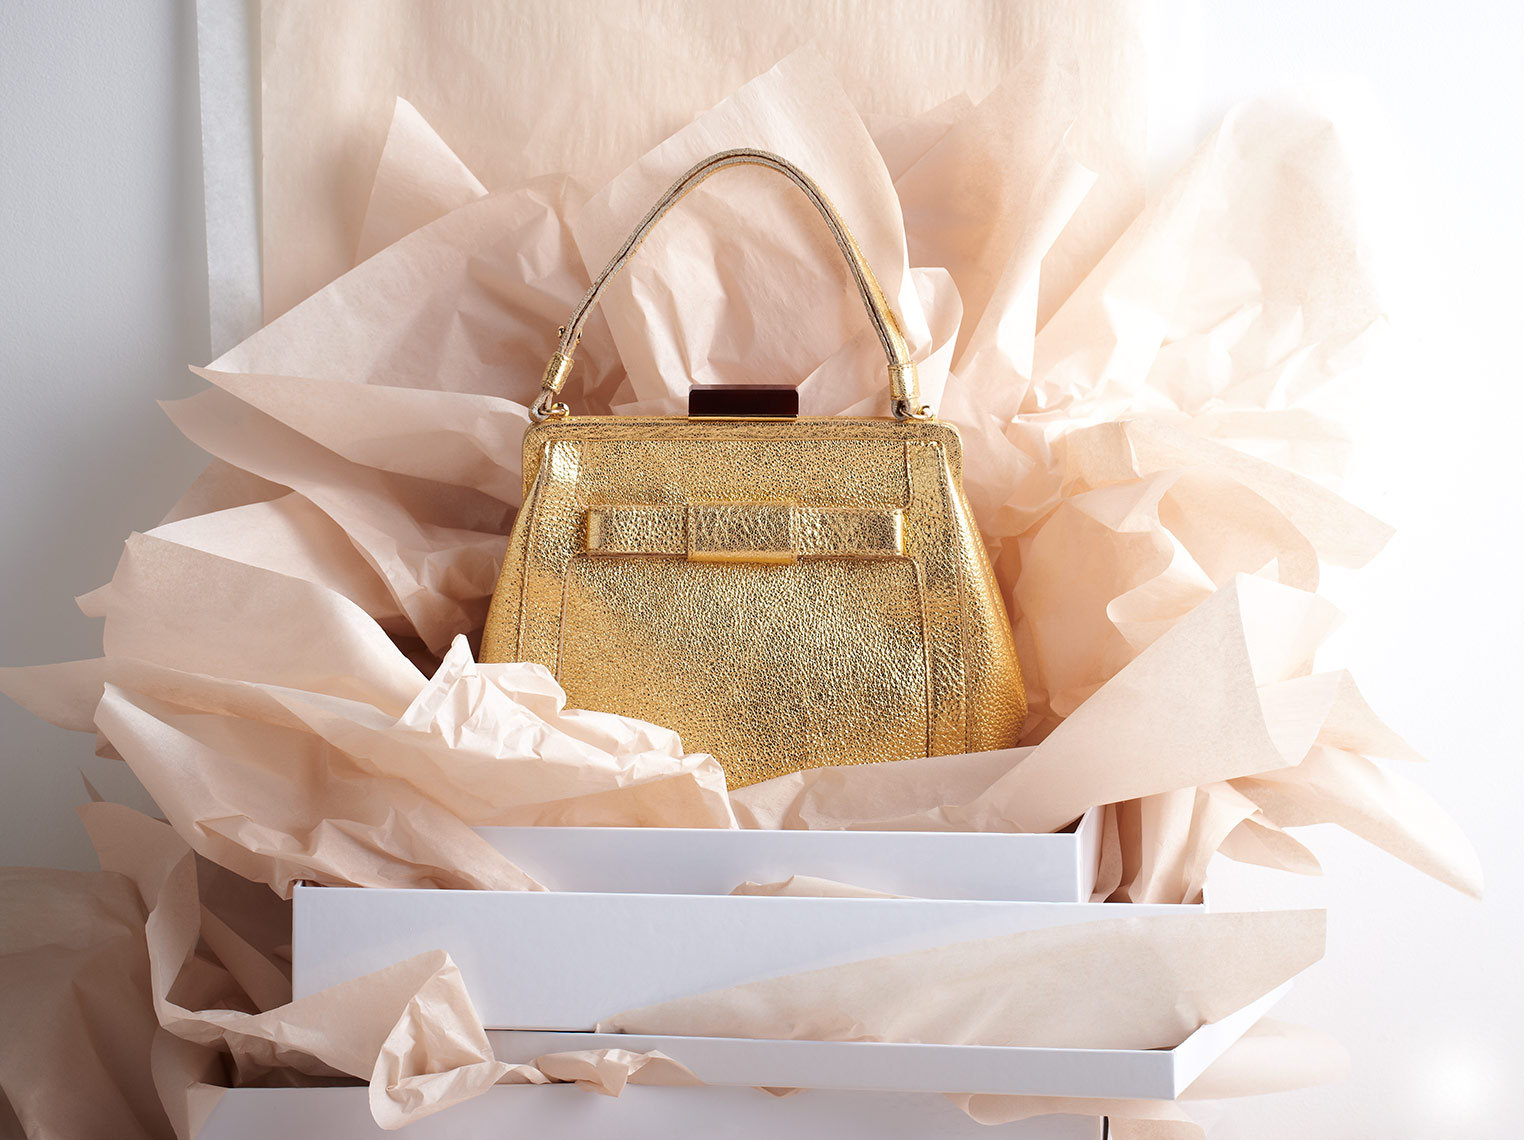 Gold handbag with pink tissue paper.